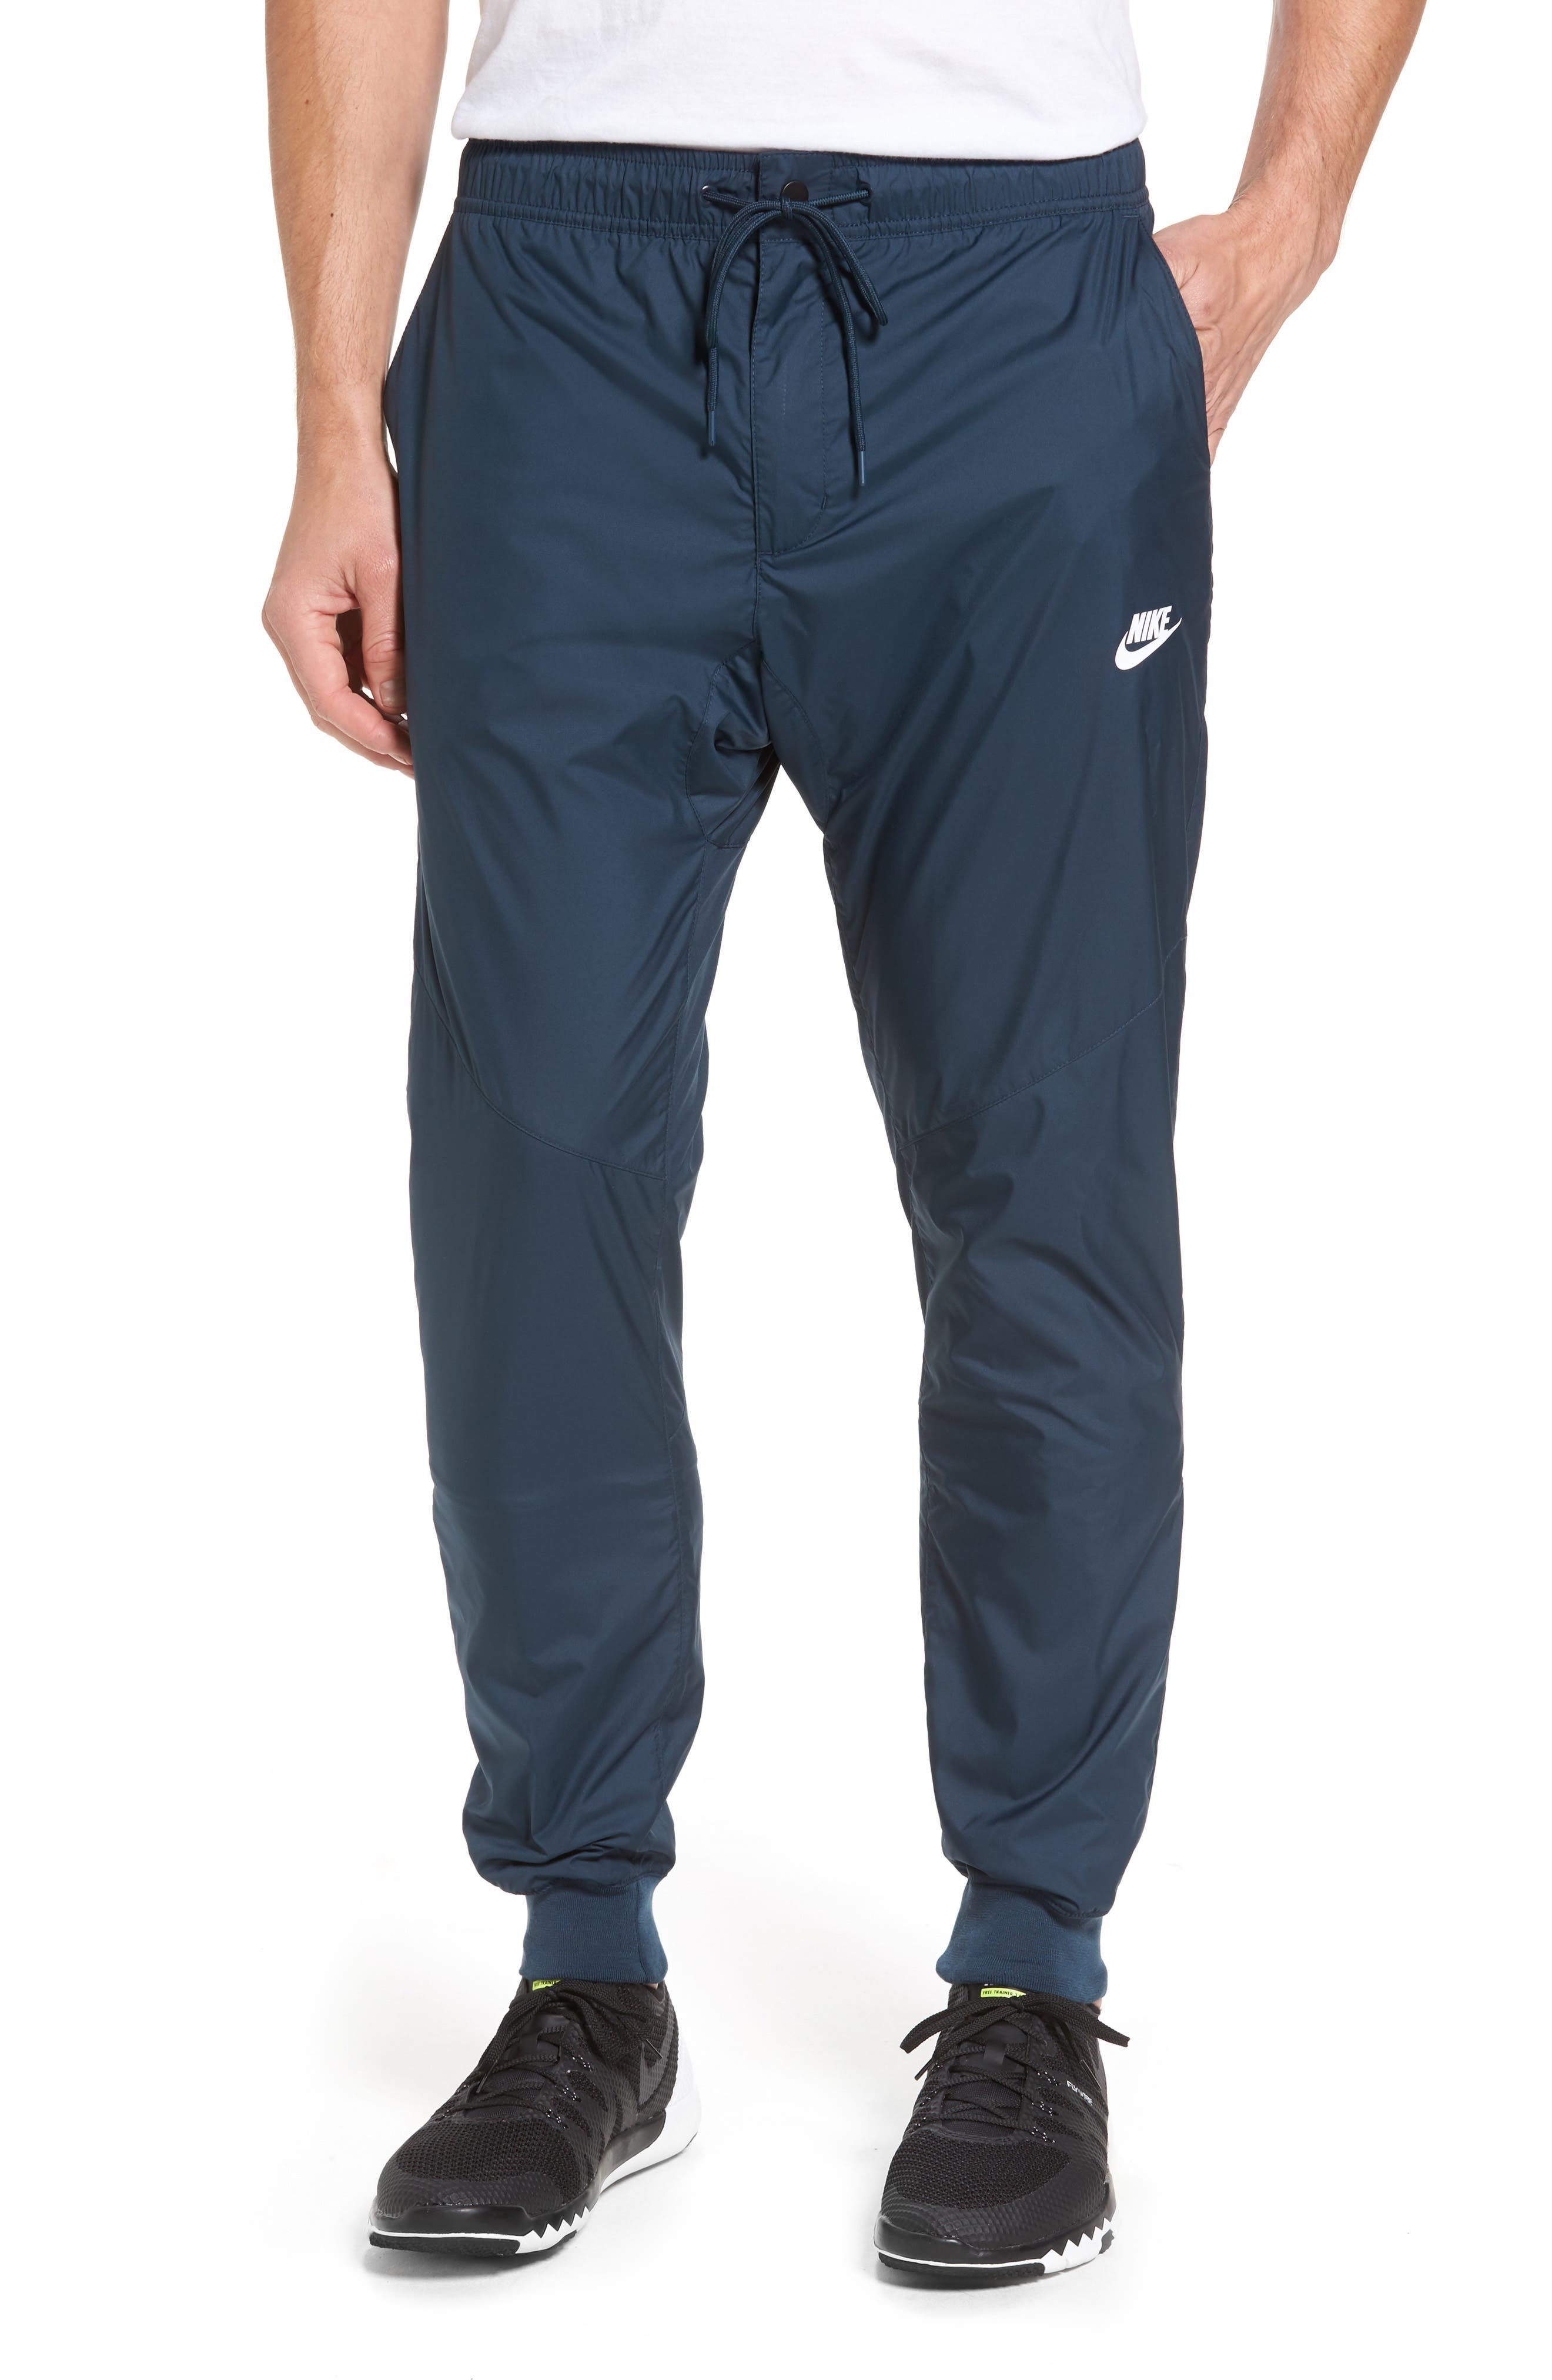 Windrunner Training Pants,                             Main thumbnail 1, color,                             Armory Navy/ White